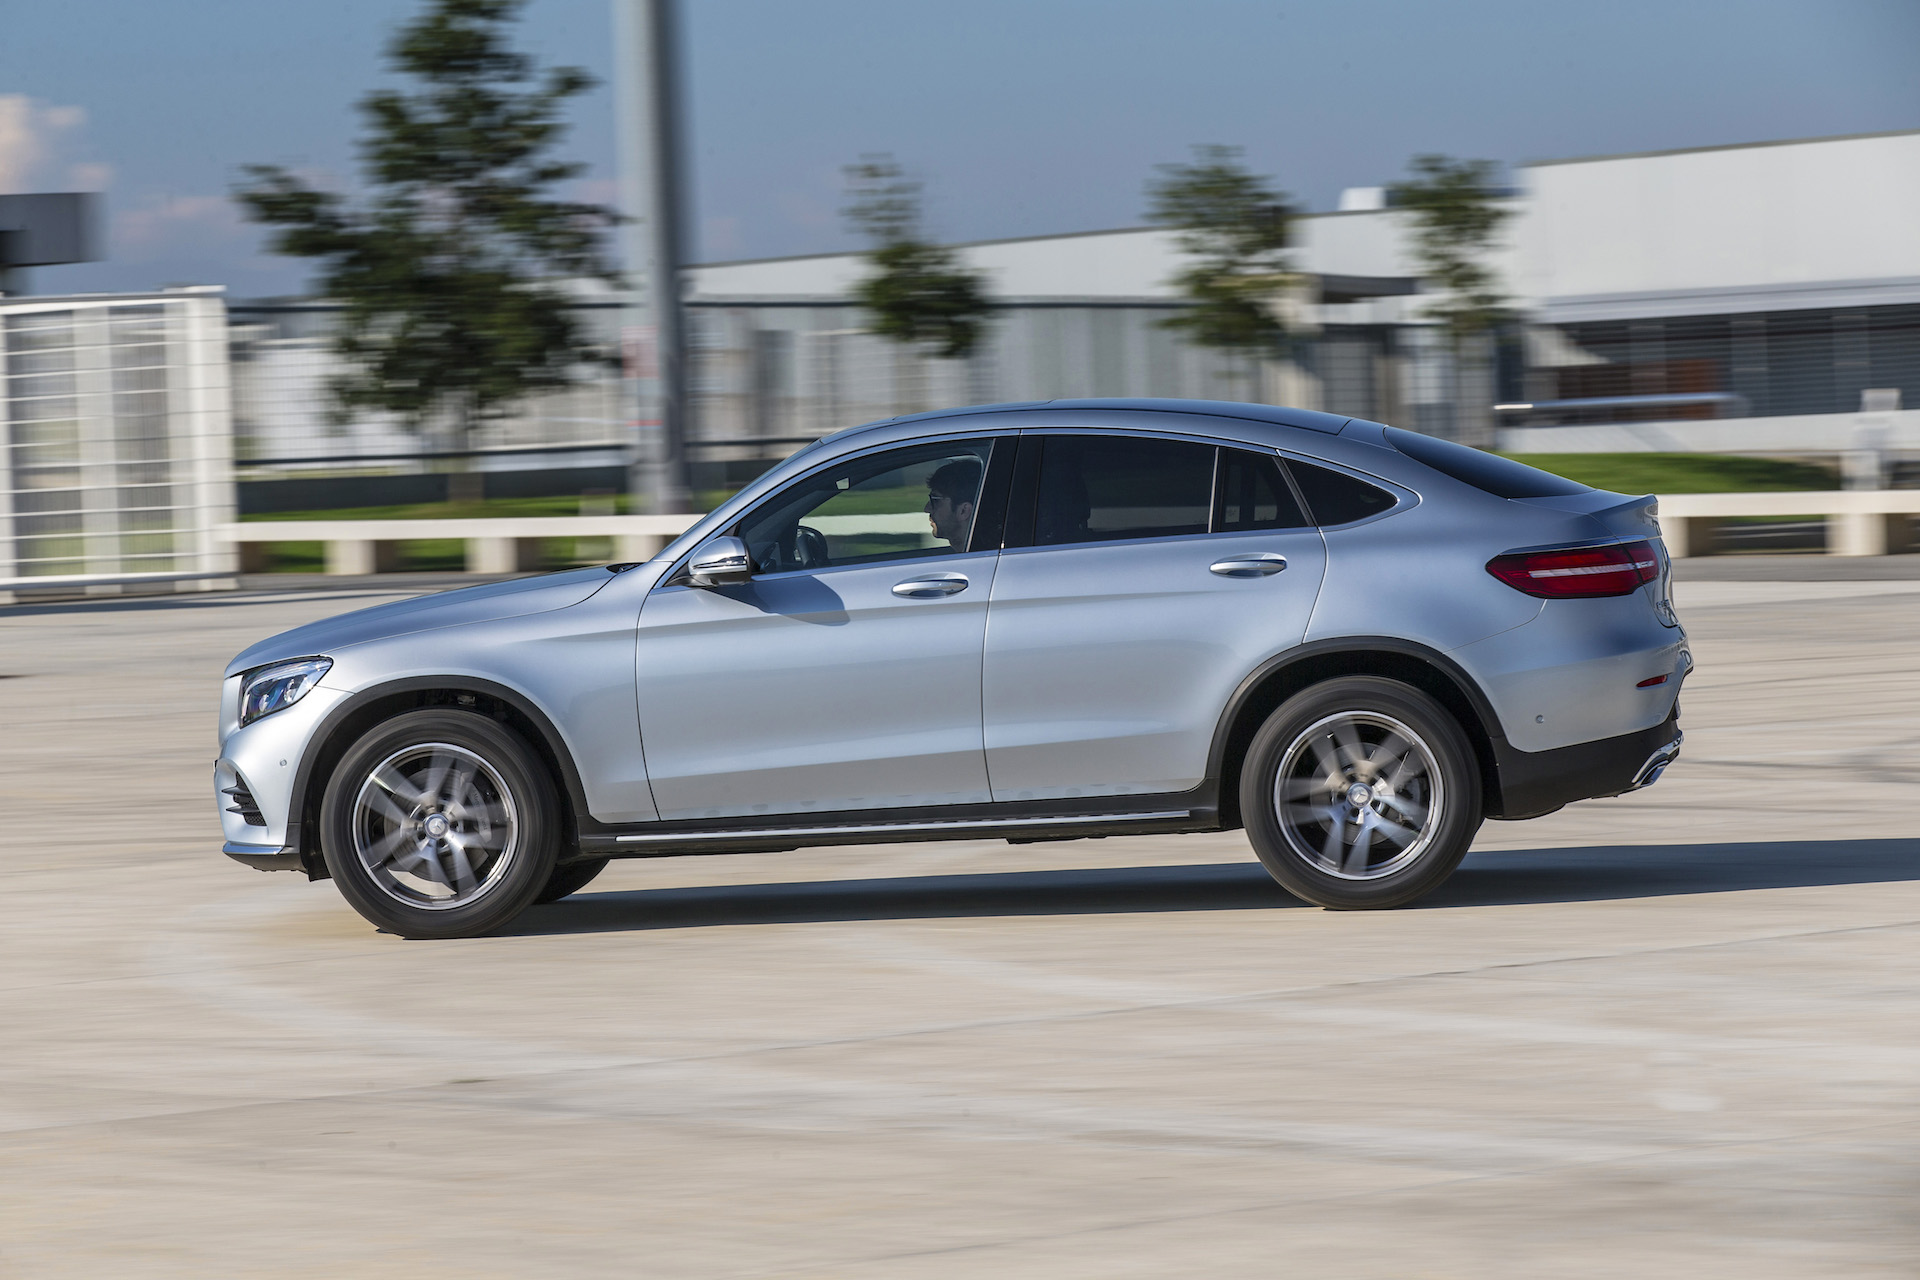 2017 mercedes benz glc300 4matic coupe first drive review for Mercedes benz motorsport